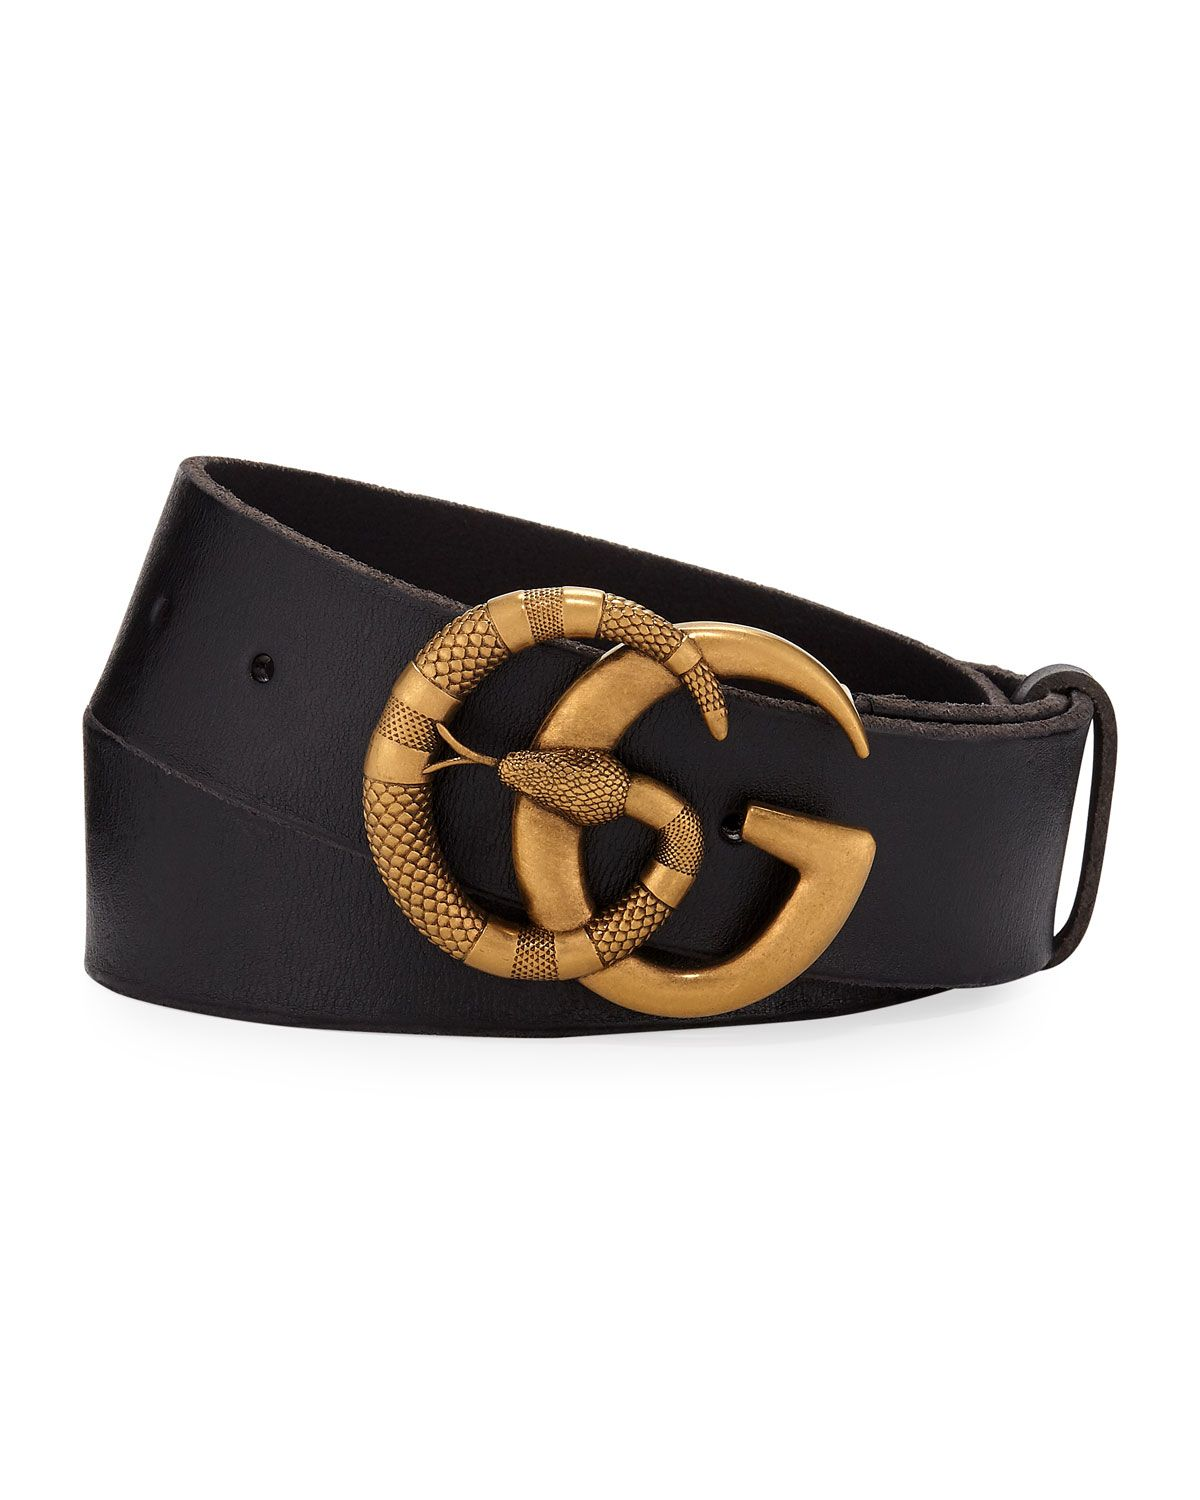 5952d1984616d Gucci Men's Cuoio Toscano Snake GG Belt in 2019   Products   Gucci ...